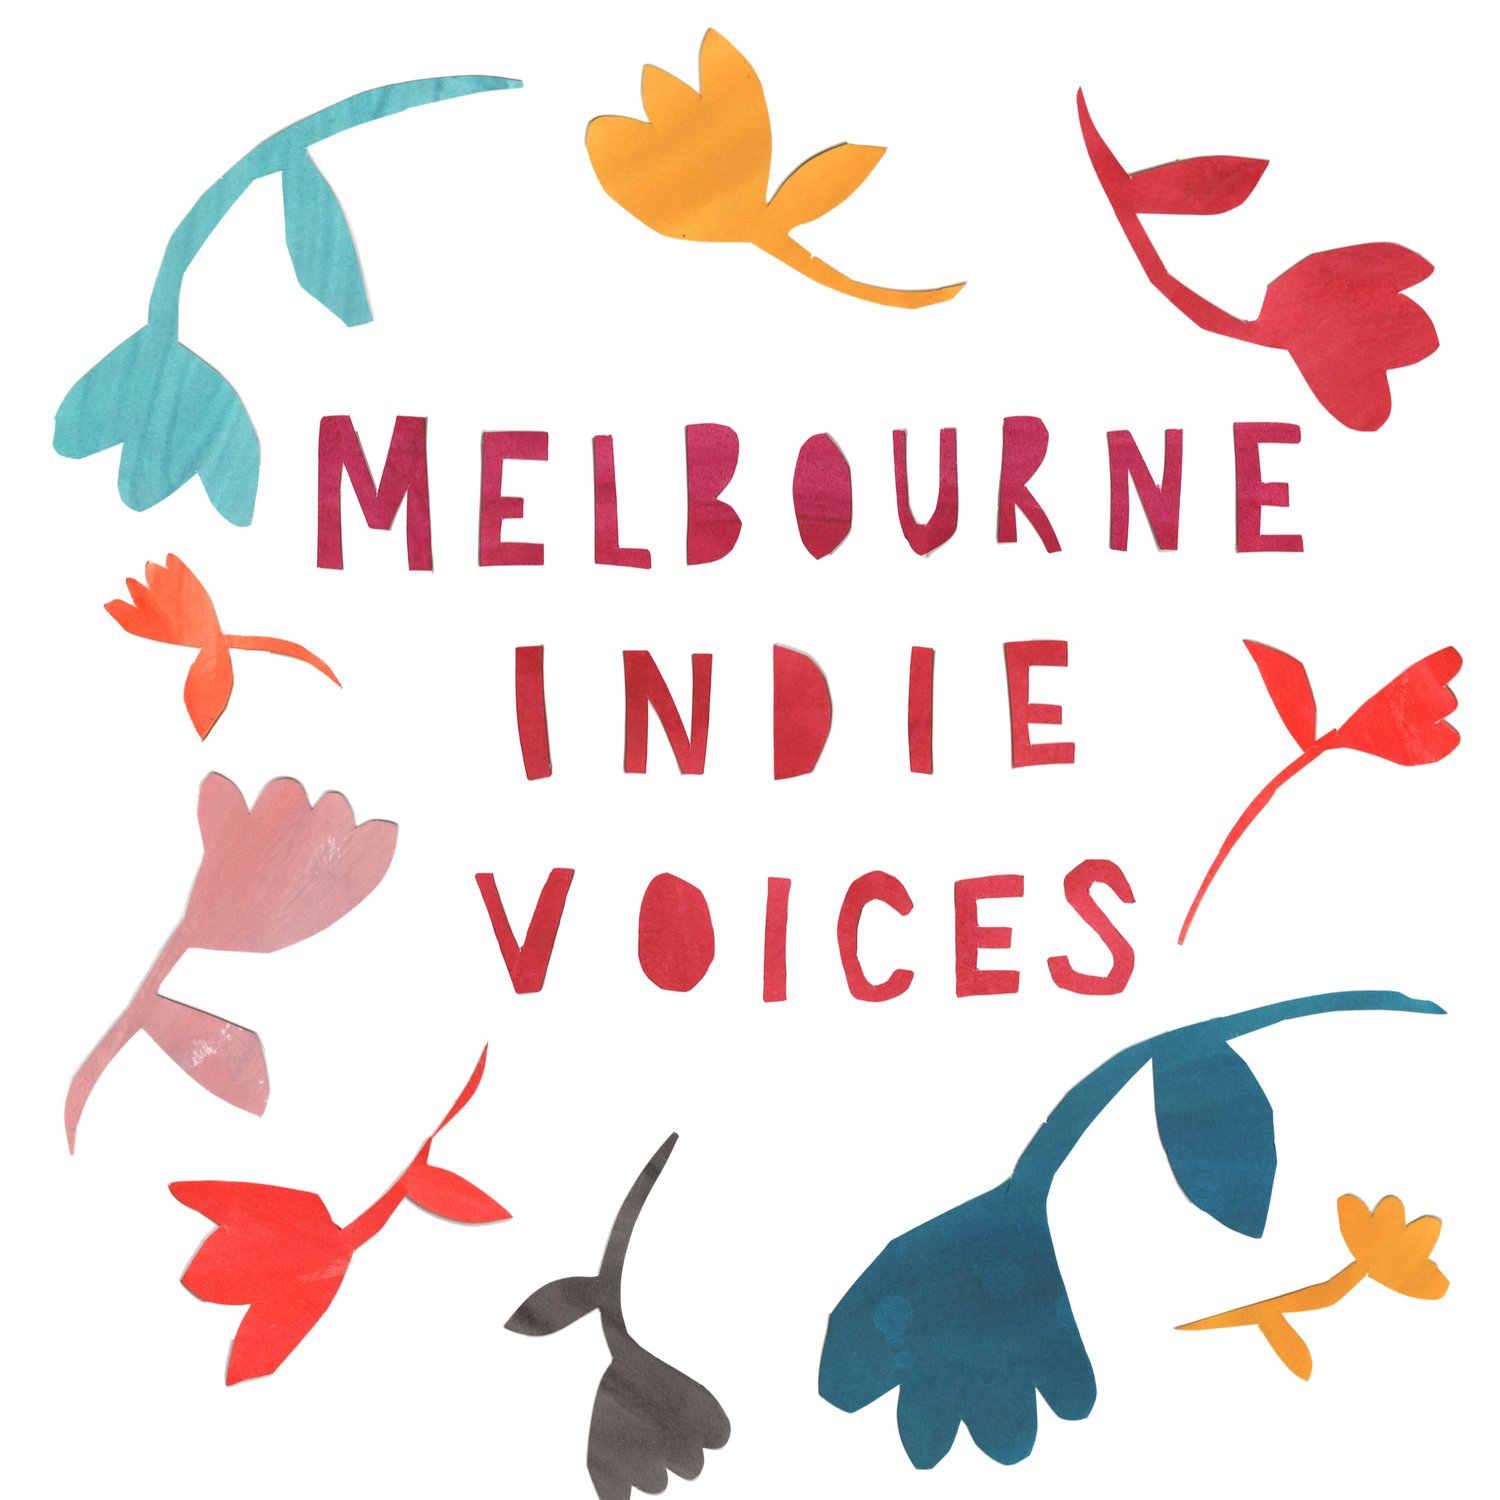 MELBOURNE INDIE VOICES